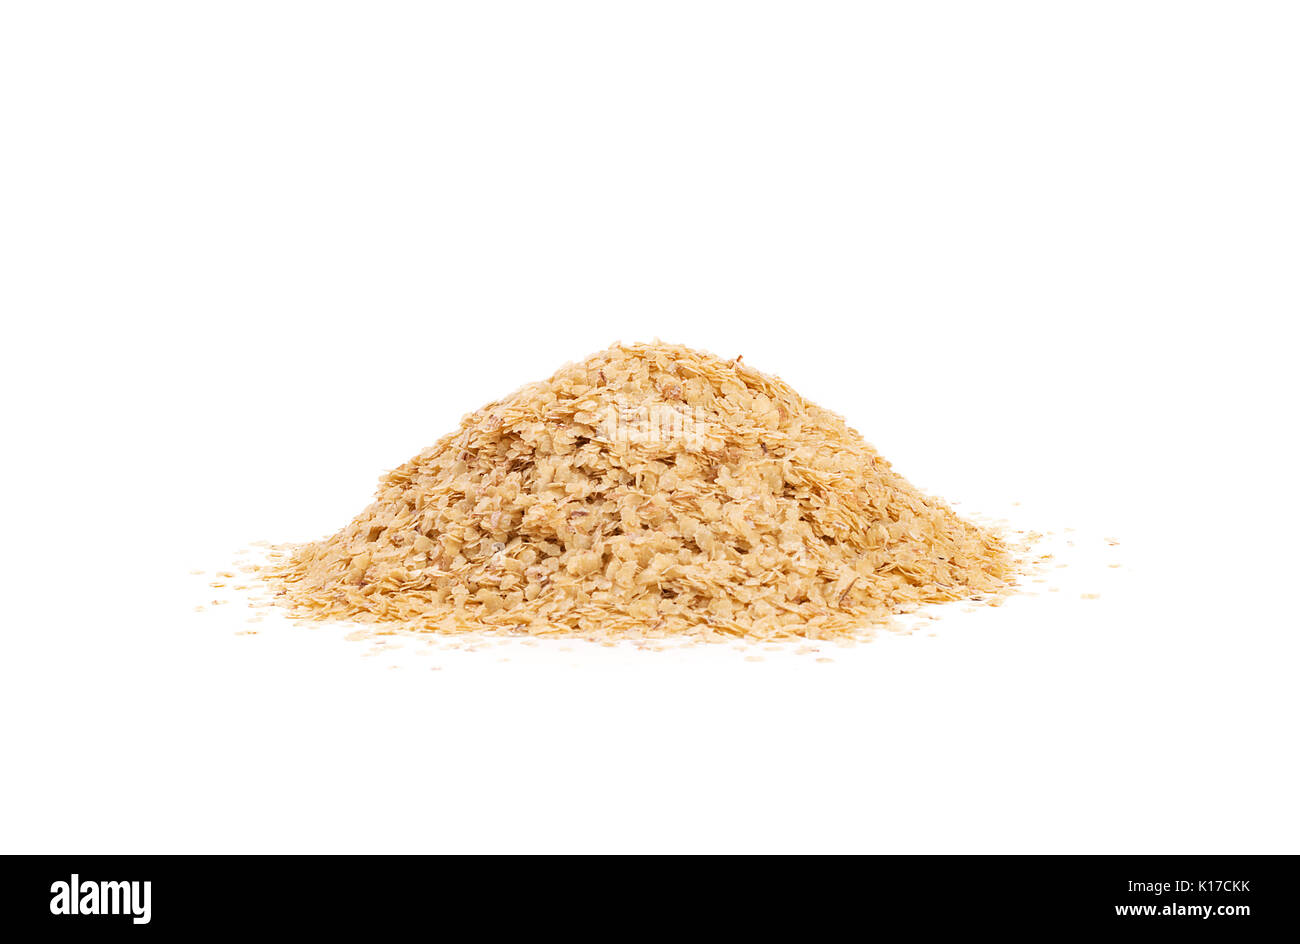 Wheat germ, the highly nutritious heart of the wheat kernel. isolated - Stock Image